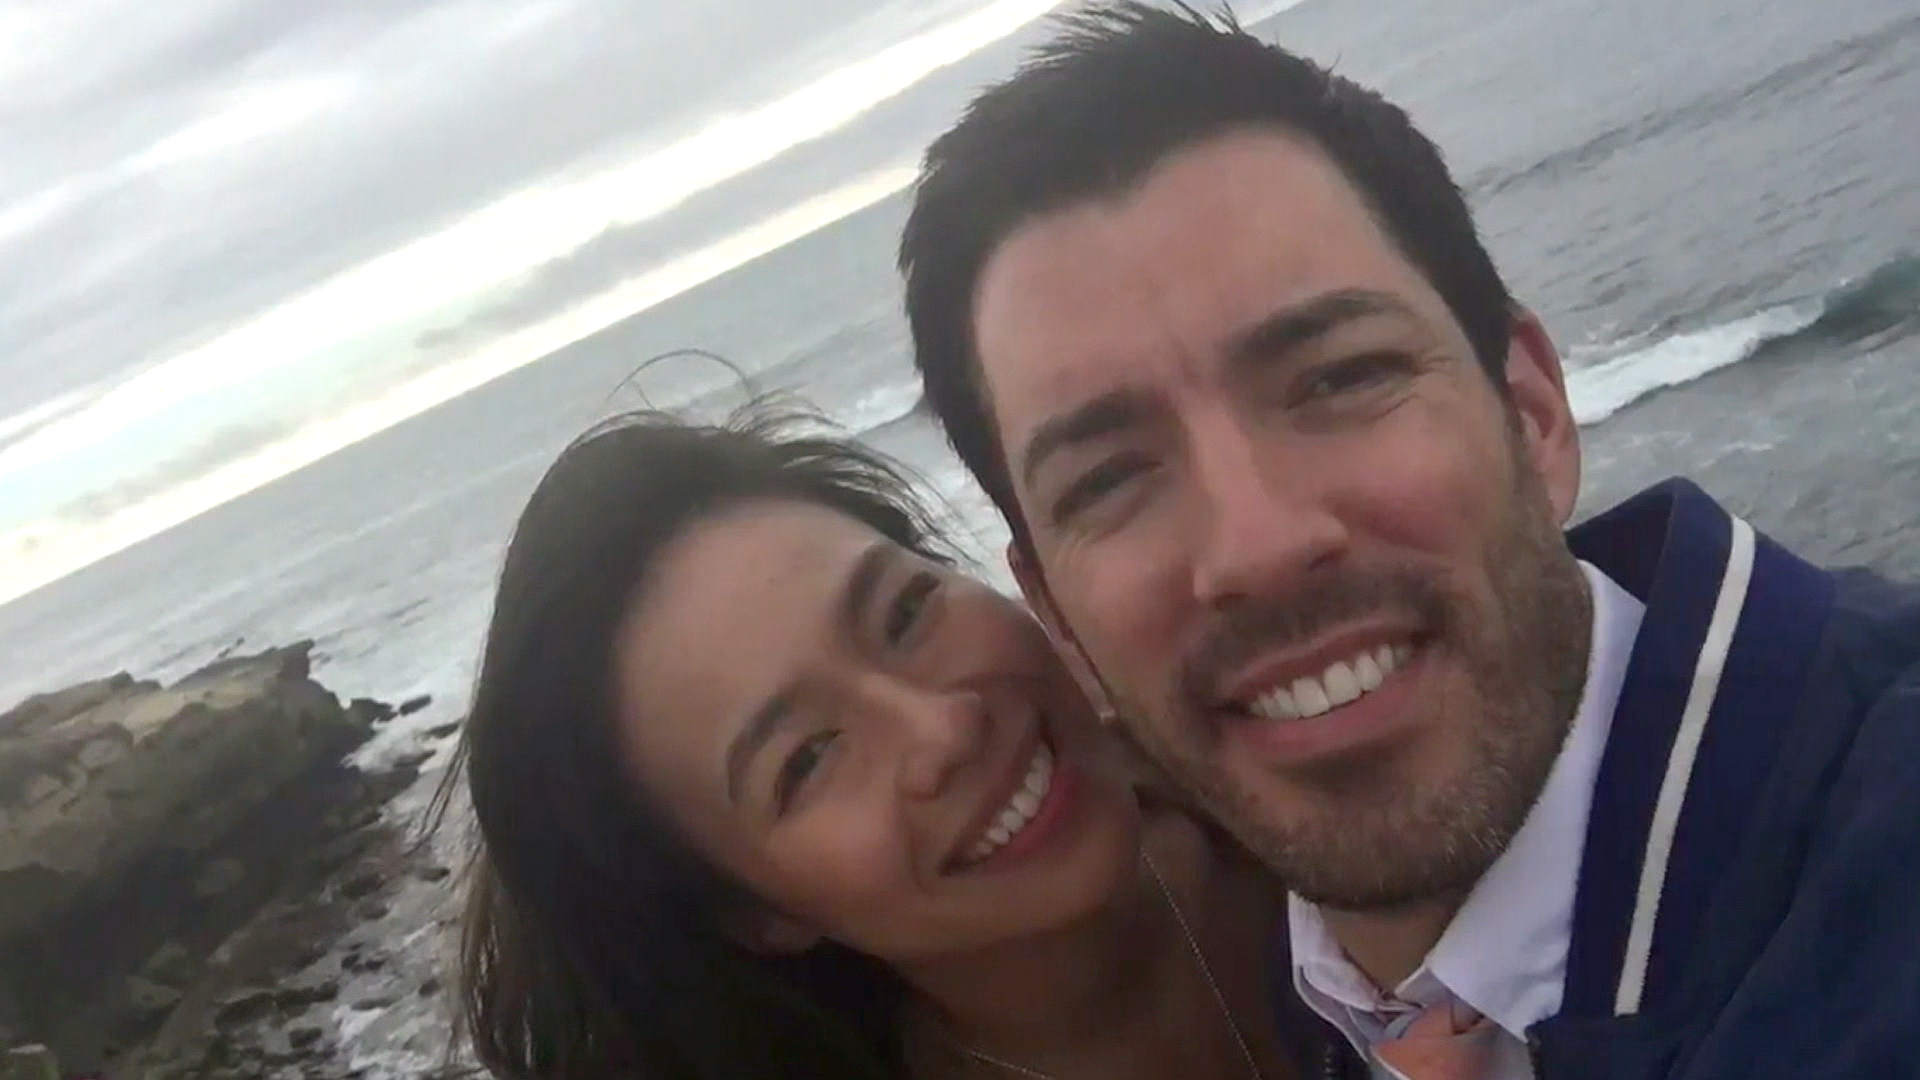 Property Brother Drew Scott Spills Engagement Details On Today